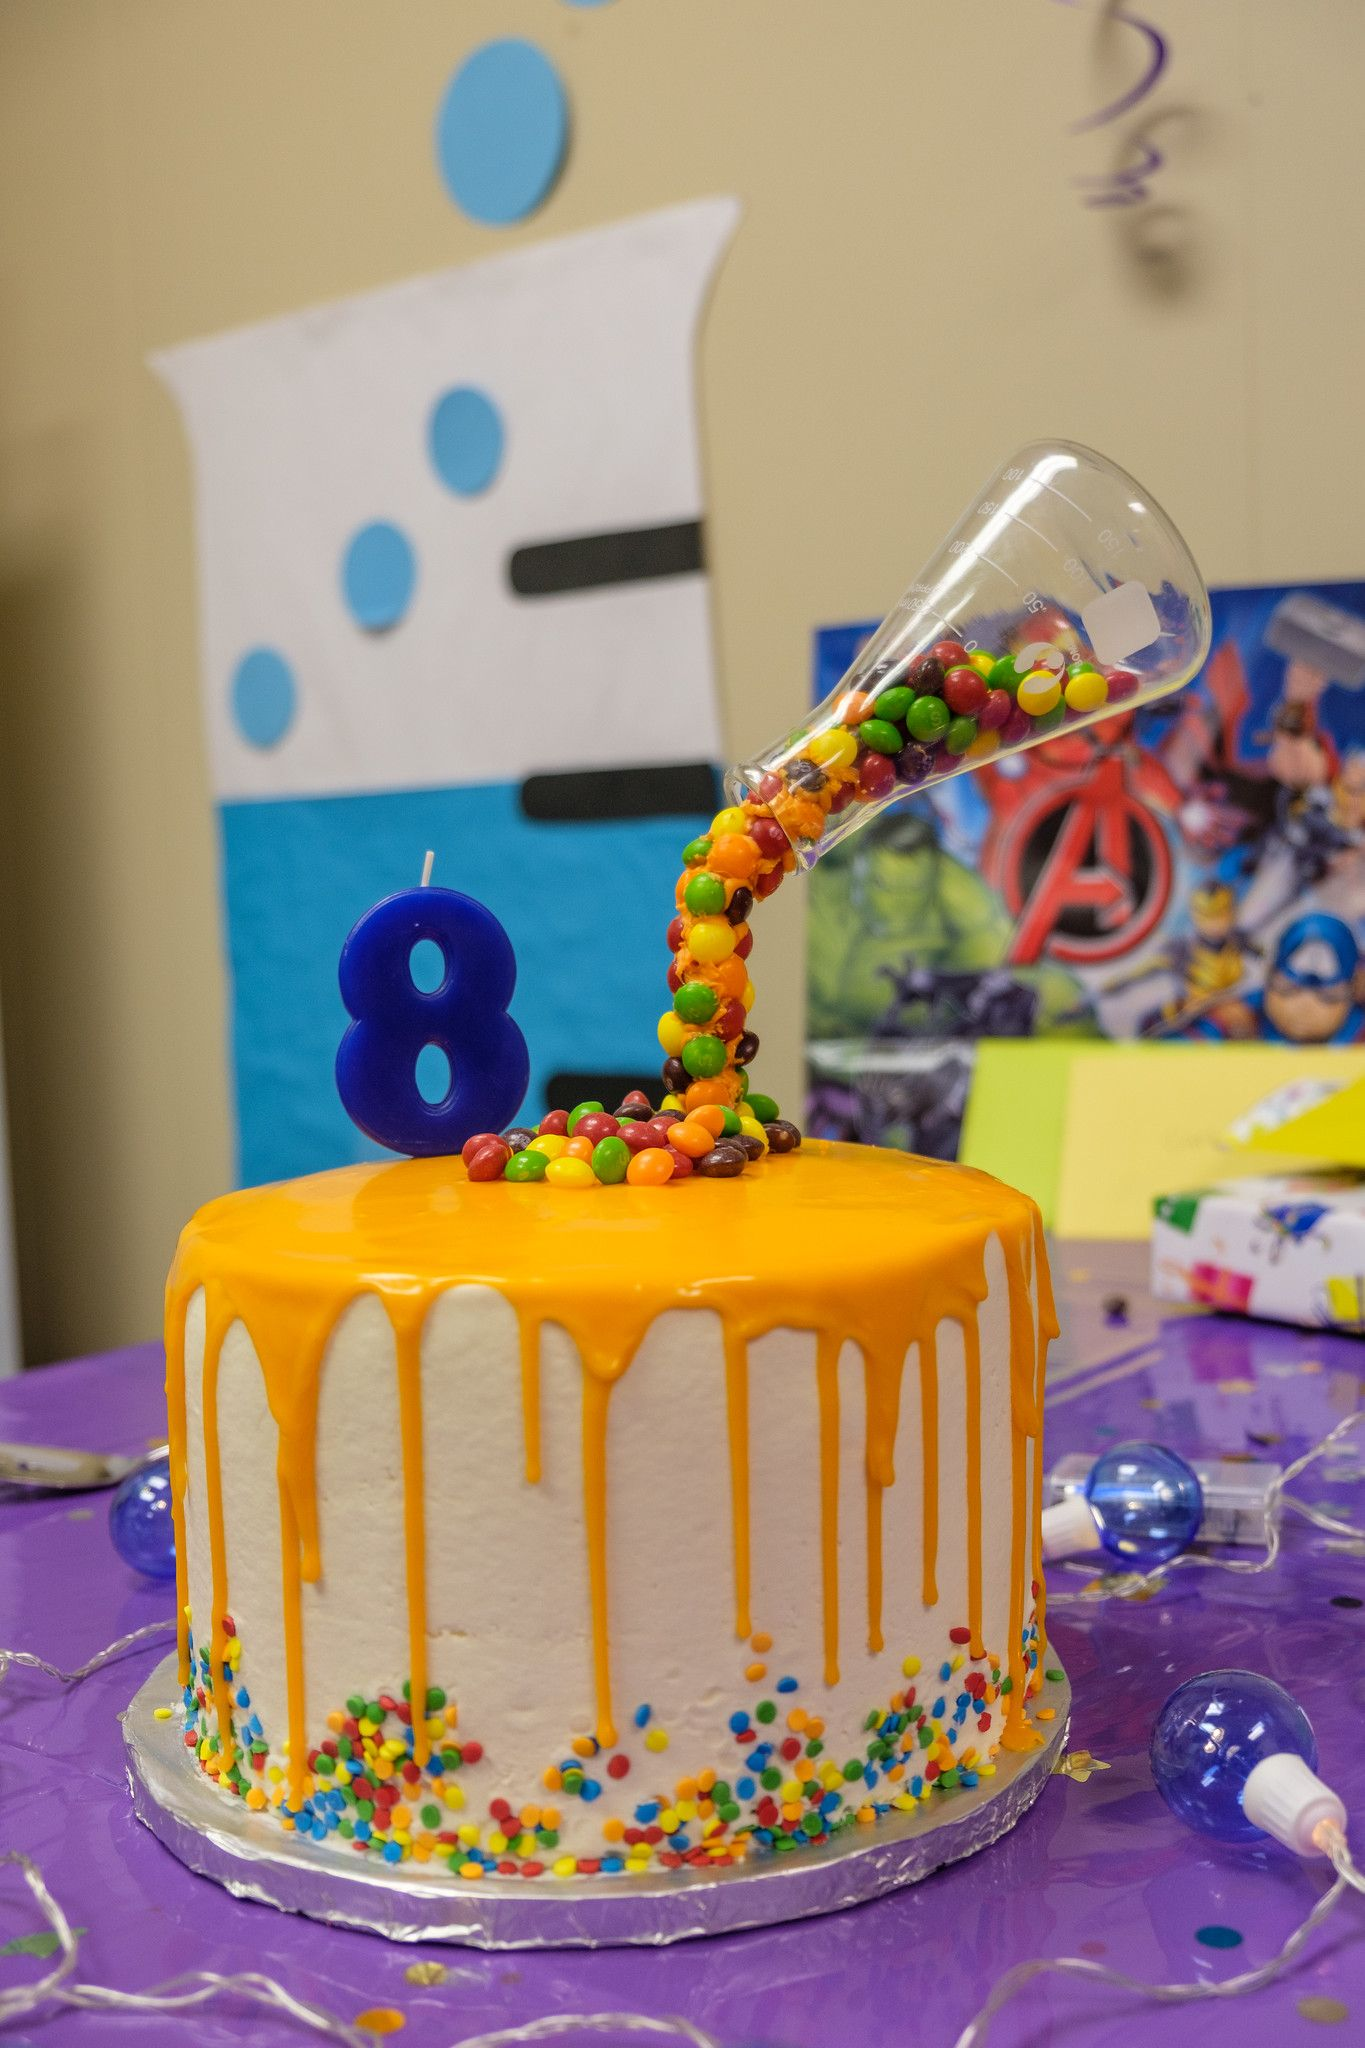 Marvelous Rainbow Layered Drip Cake Filled With Skittles And Sprinkles Personalised Birthday Cards Petedlily Jamesorg